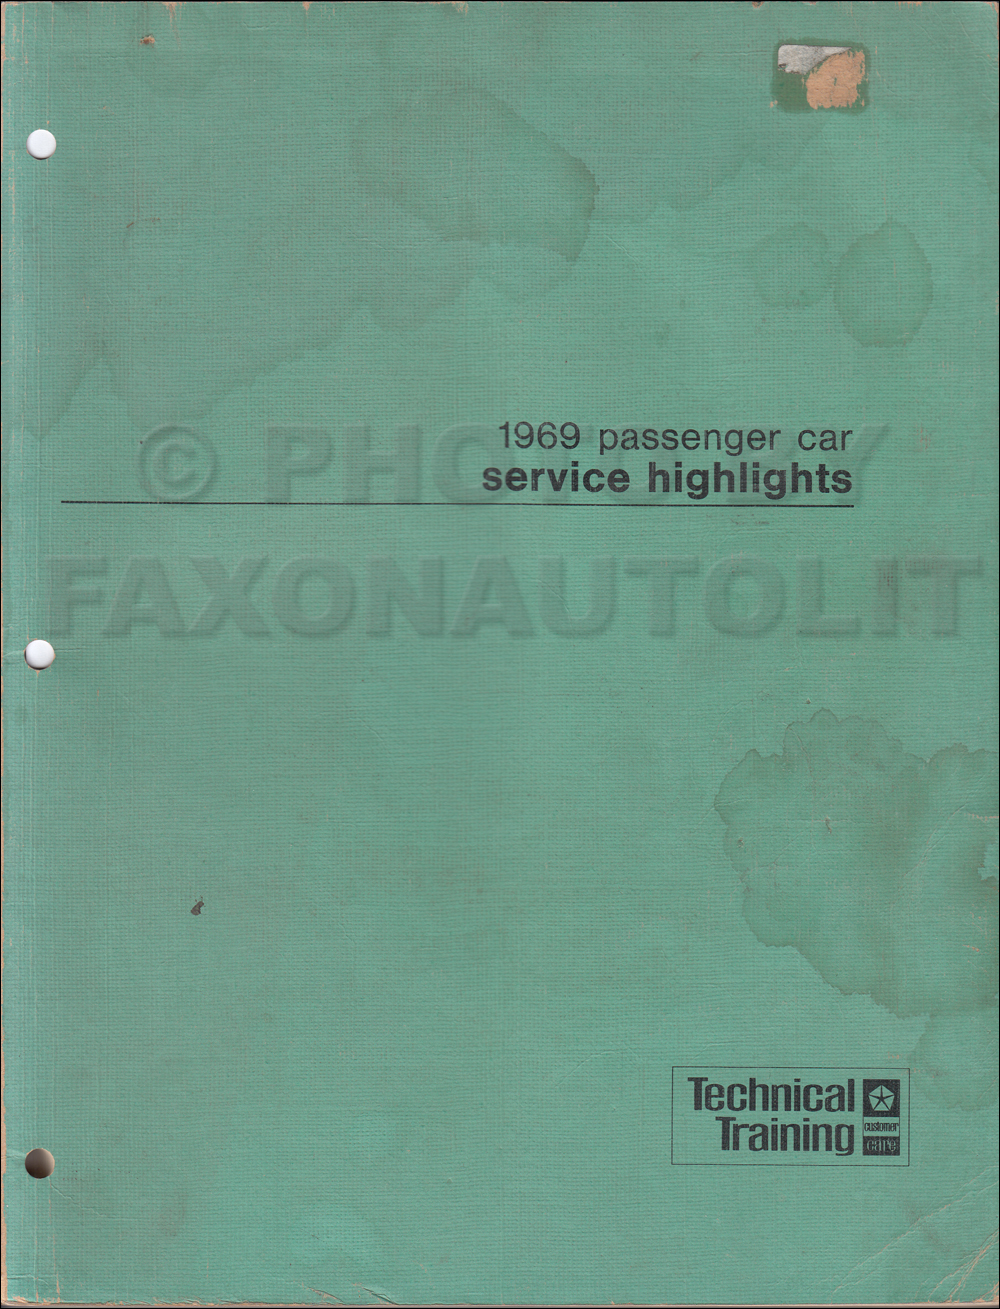 plymouth gtx service manuals shop owner maintenance and repair 1969 mopar service highlights manual original